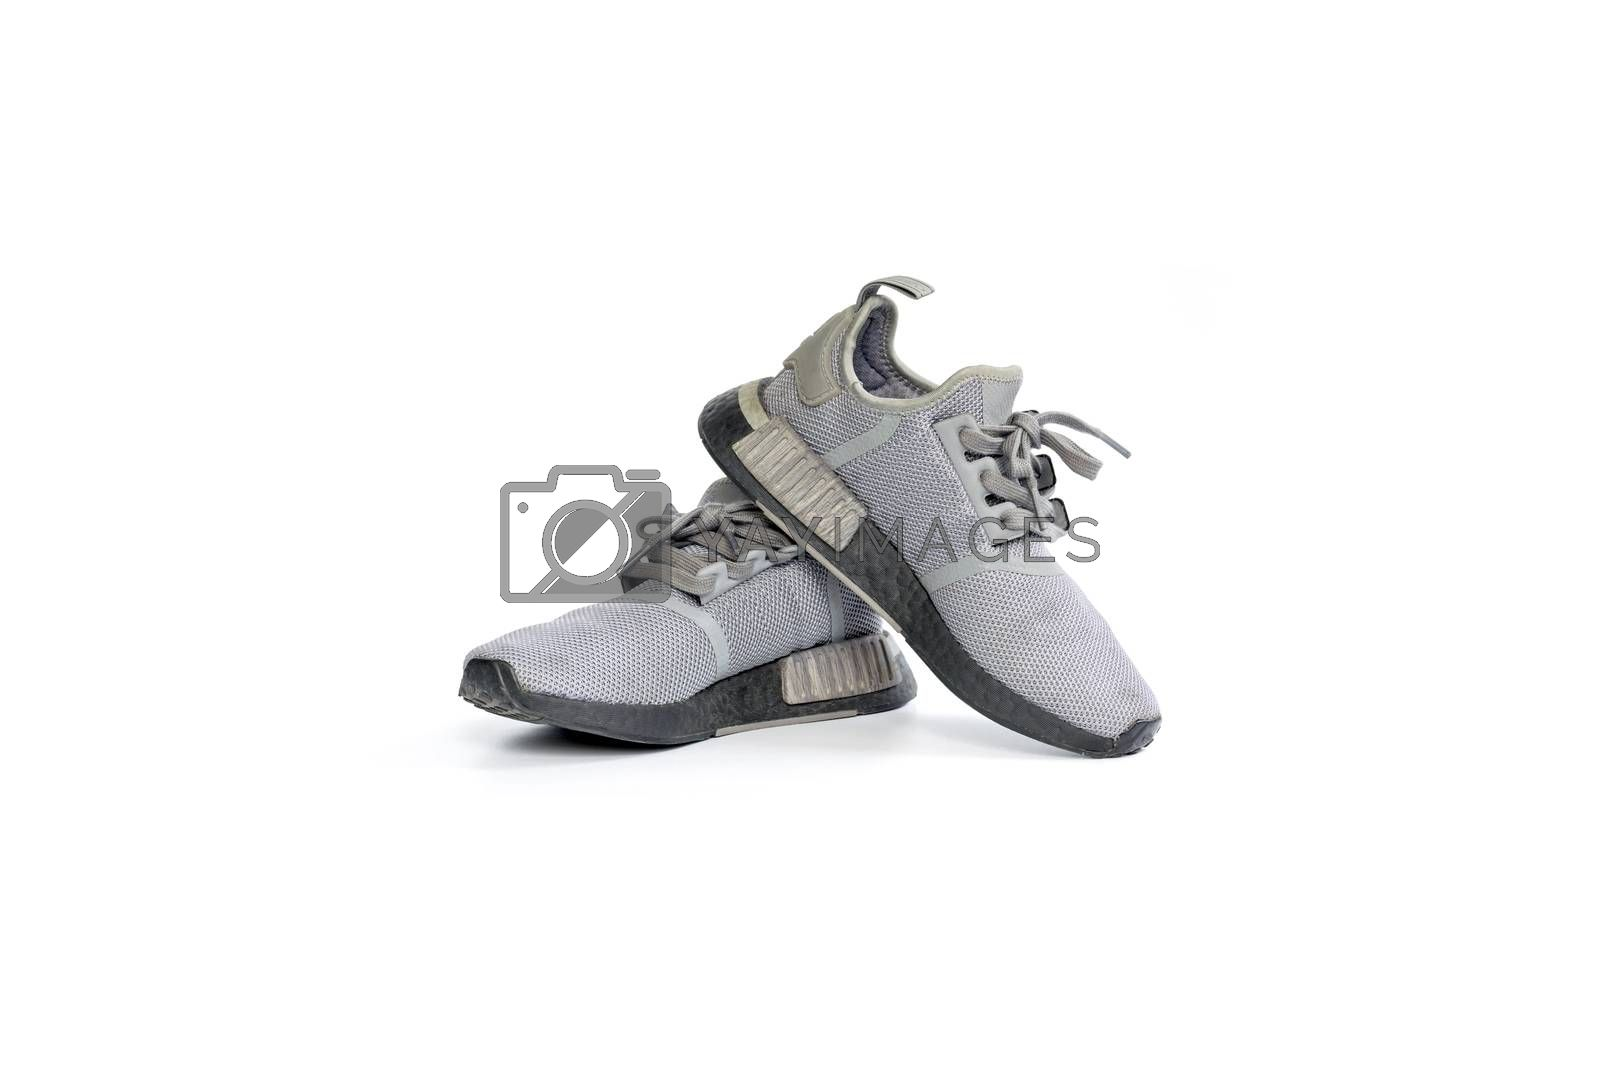 Pair of gray running shoes isolated on white background.